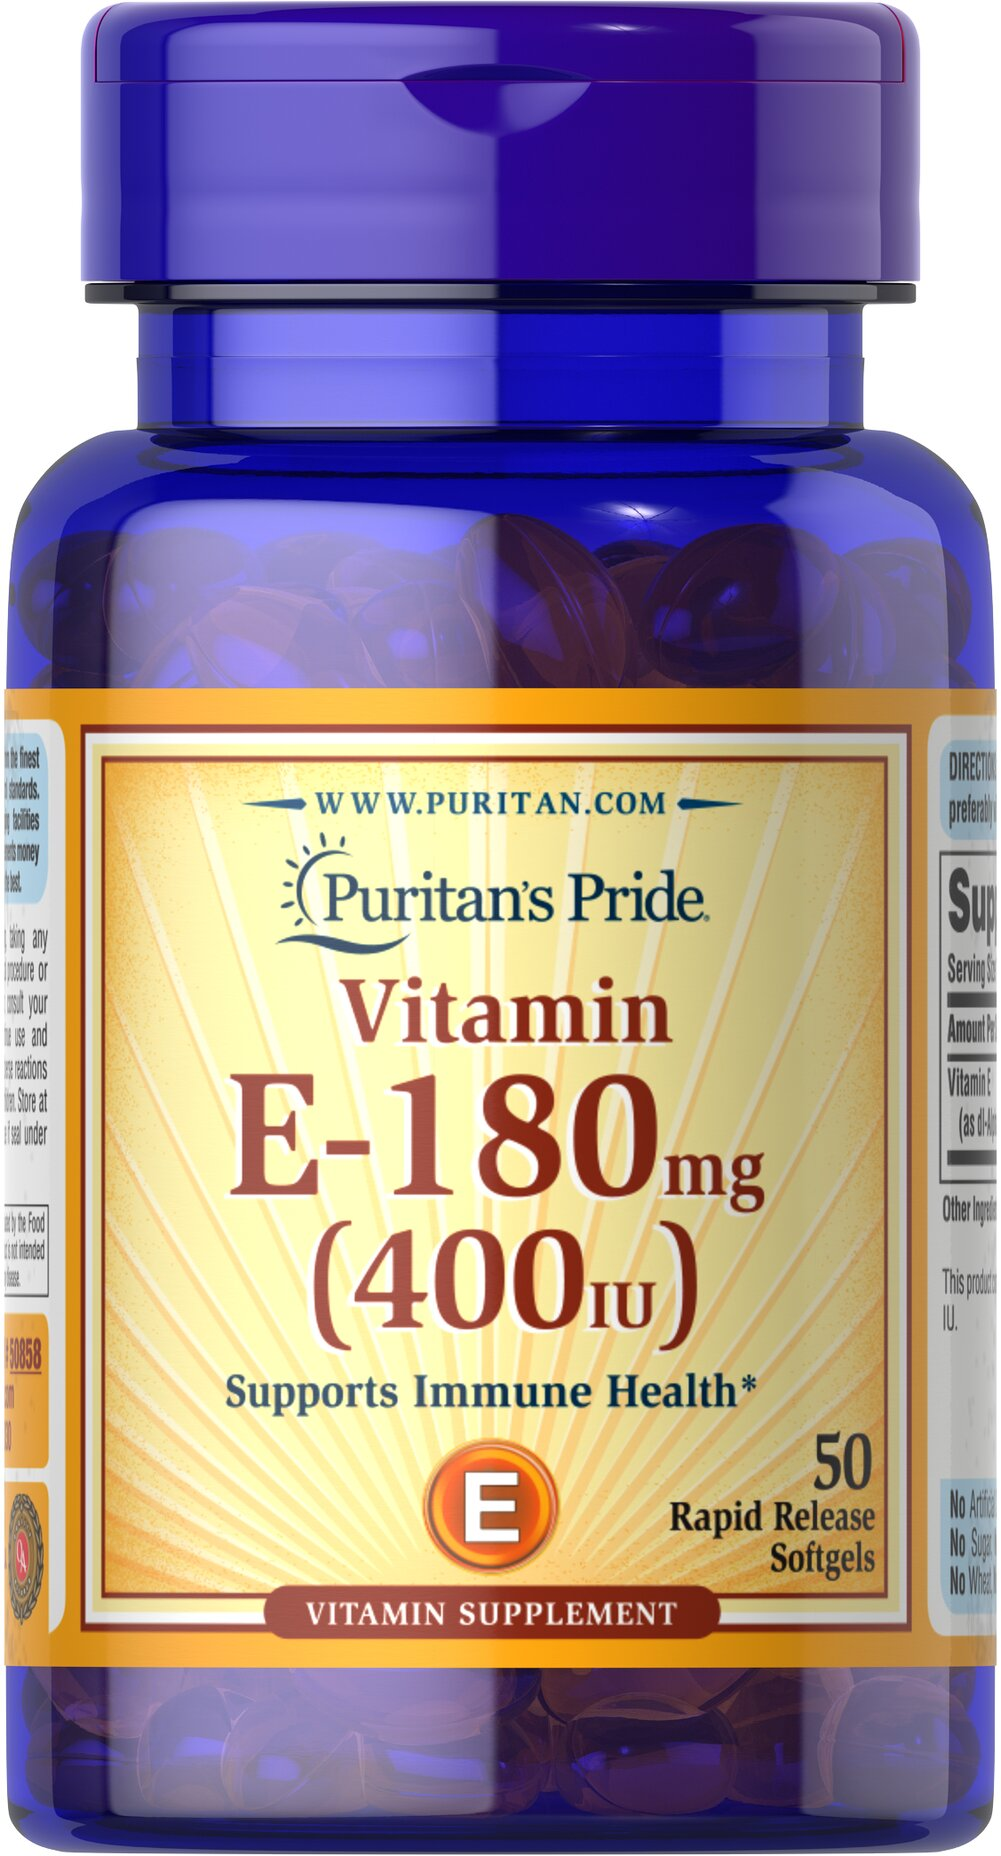 Vitamin E-400 IU <p>Features dl-Alpha Vitamin E, a synthetic form of Vitamin E</p><p>Promotes heart and circulatory health**</p><p>Contributes to healthy skin and immune function**</p><p>Rapid release liquid softgels are easy to swallow</p><p>One a day formula</p> 50 Softgels 400 IU $5.99